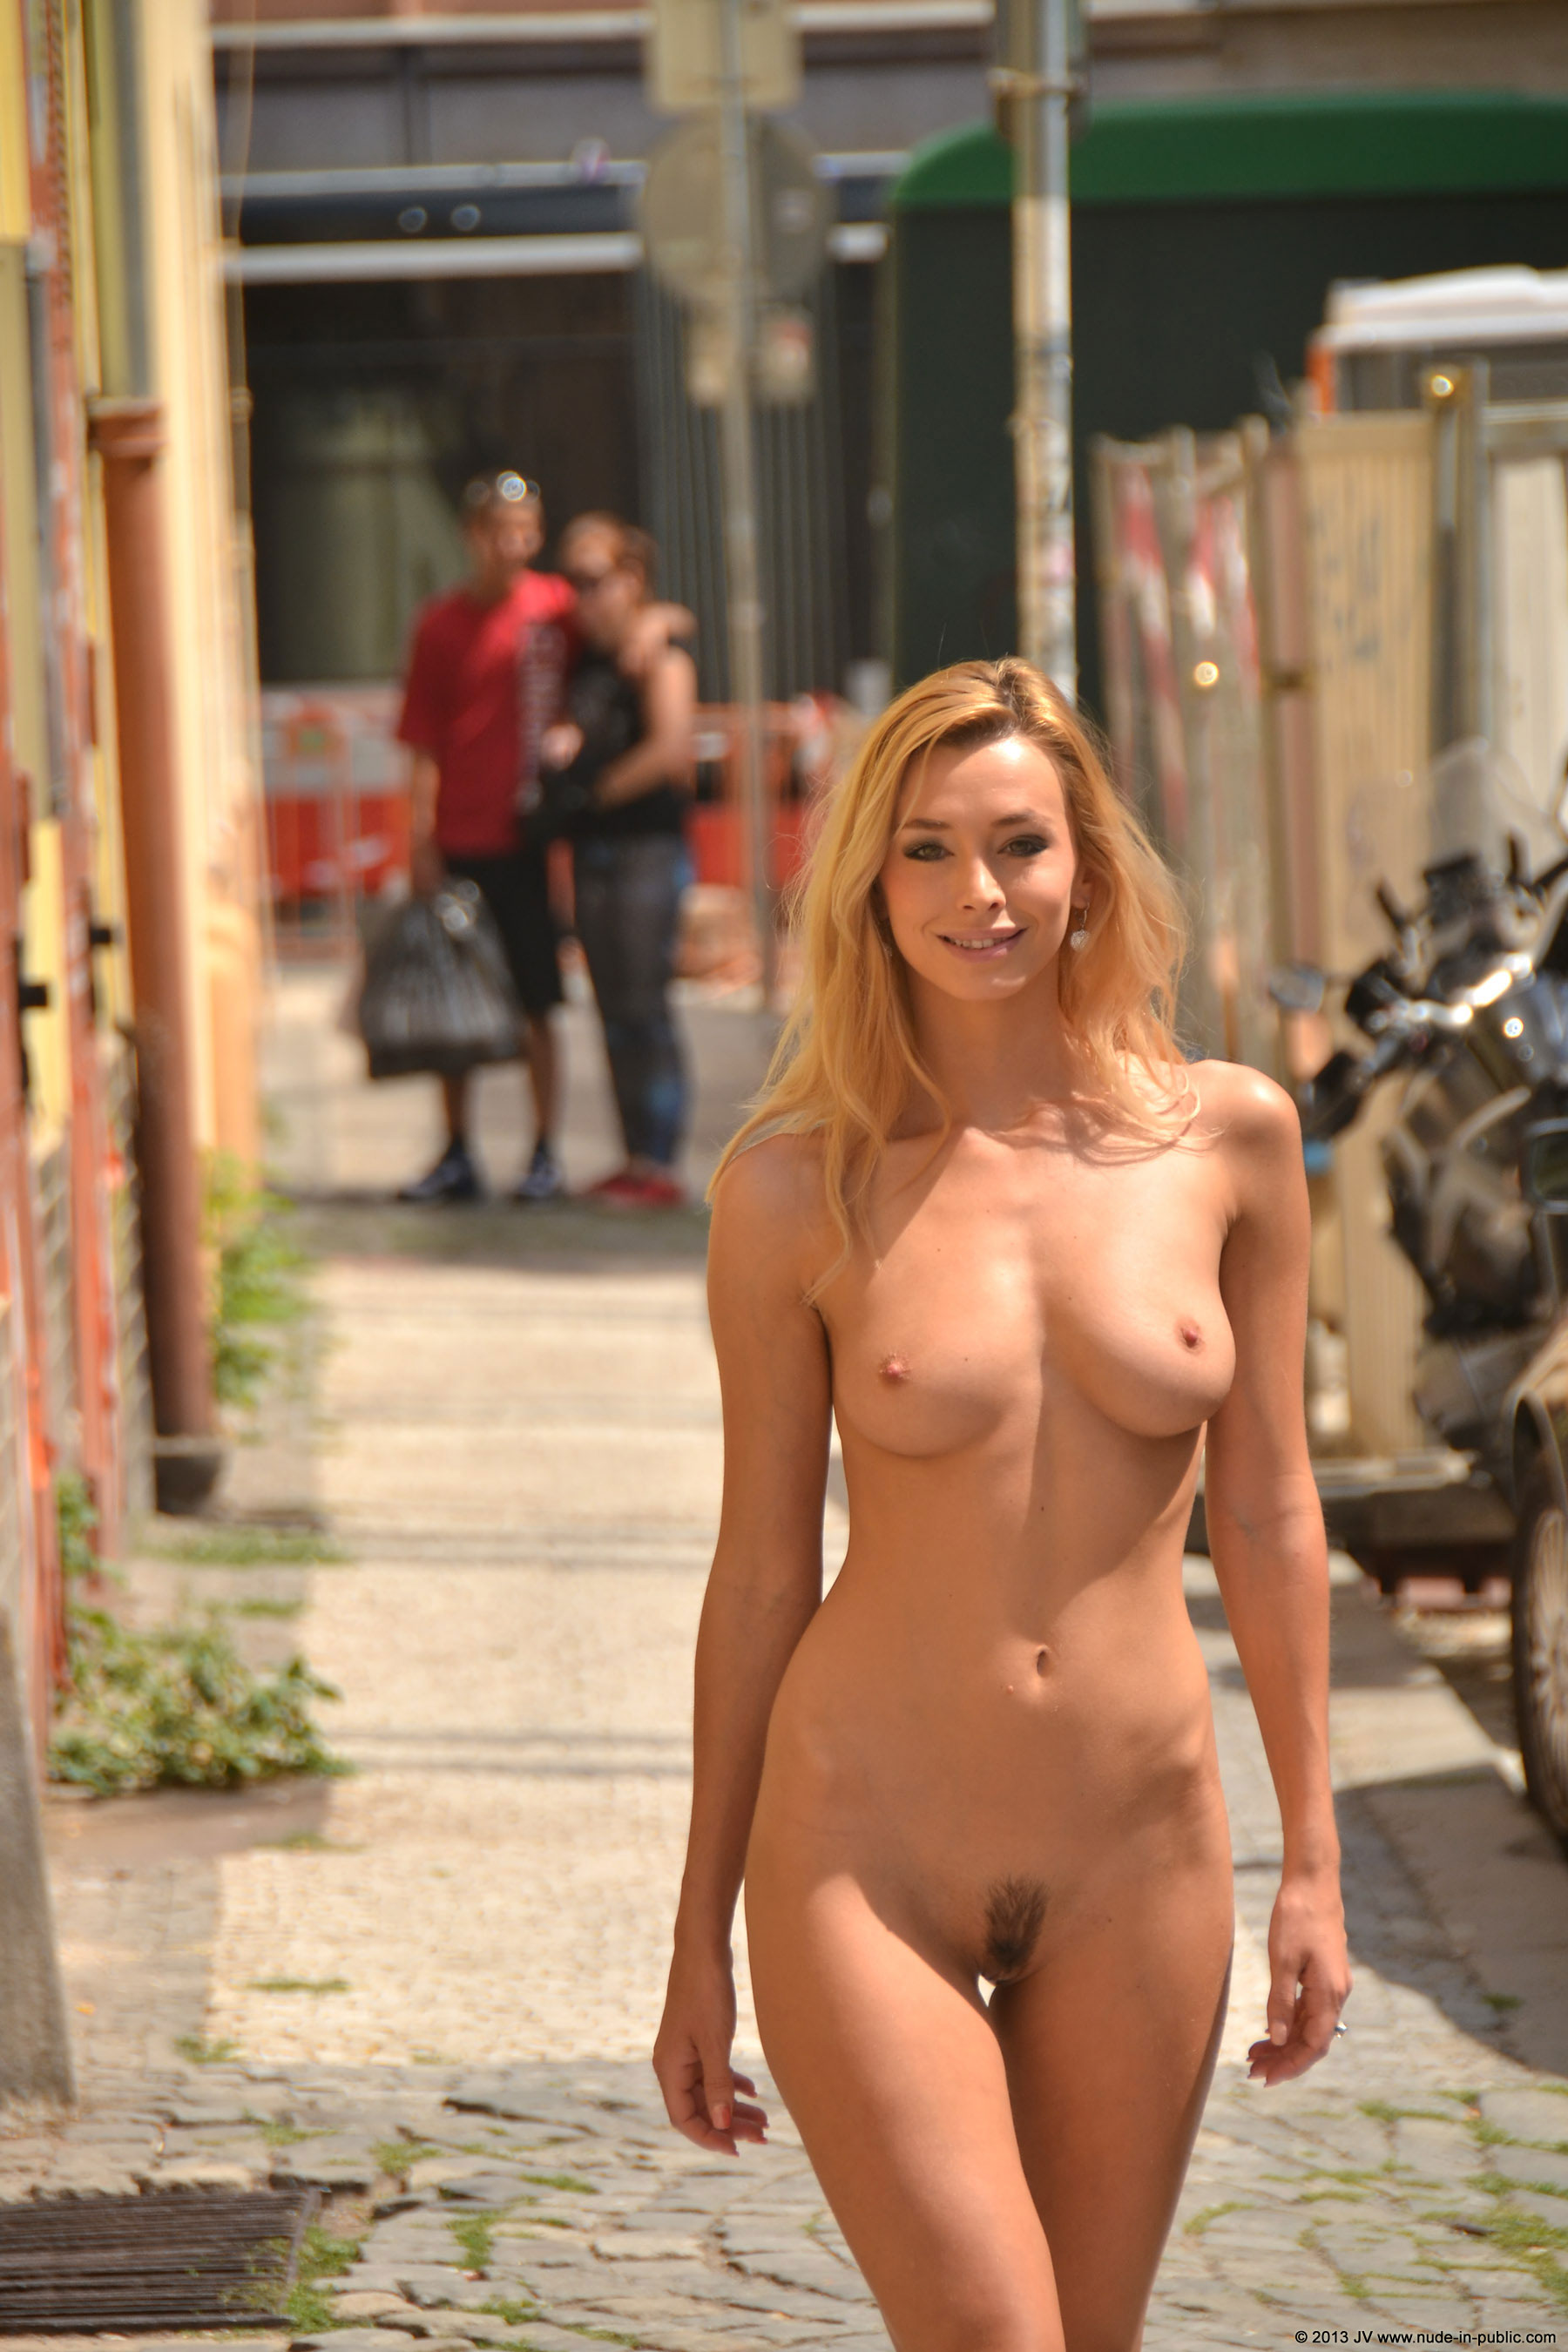 Town naked girls